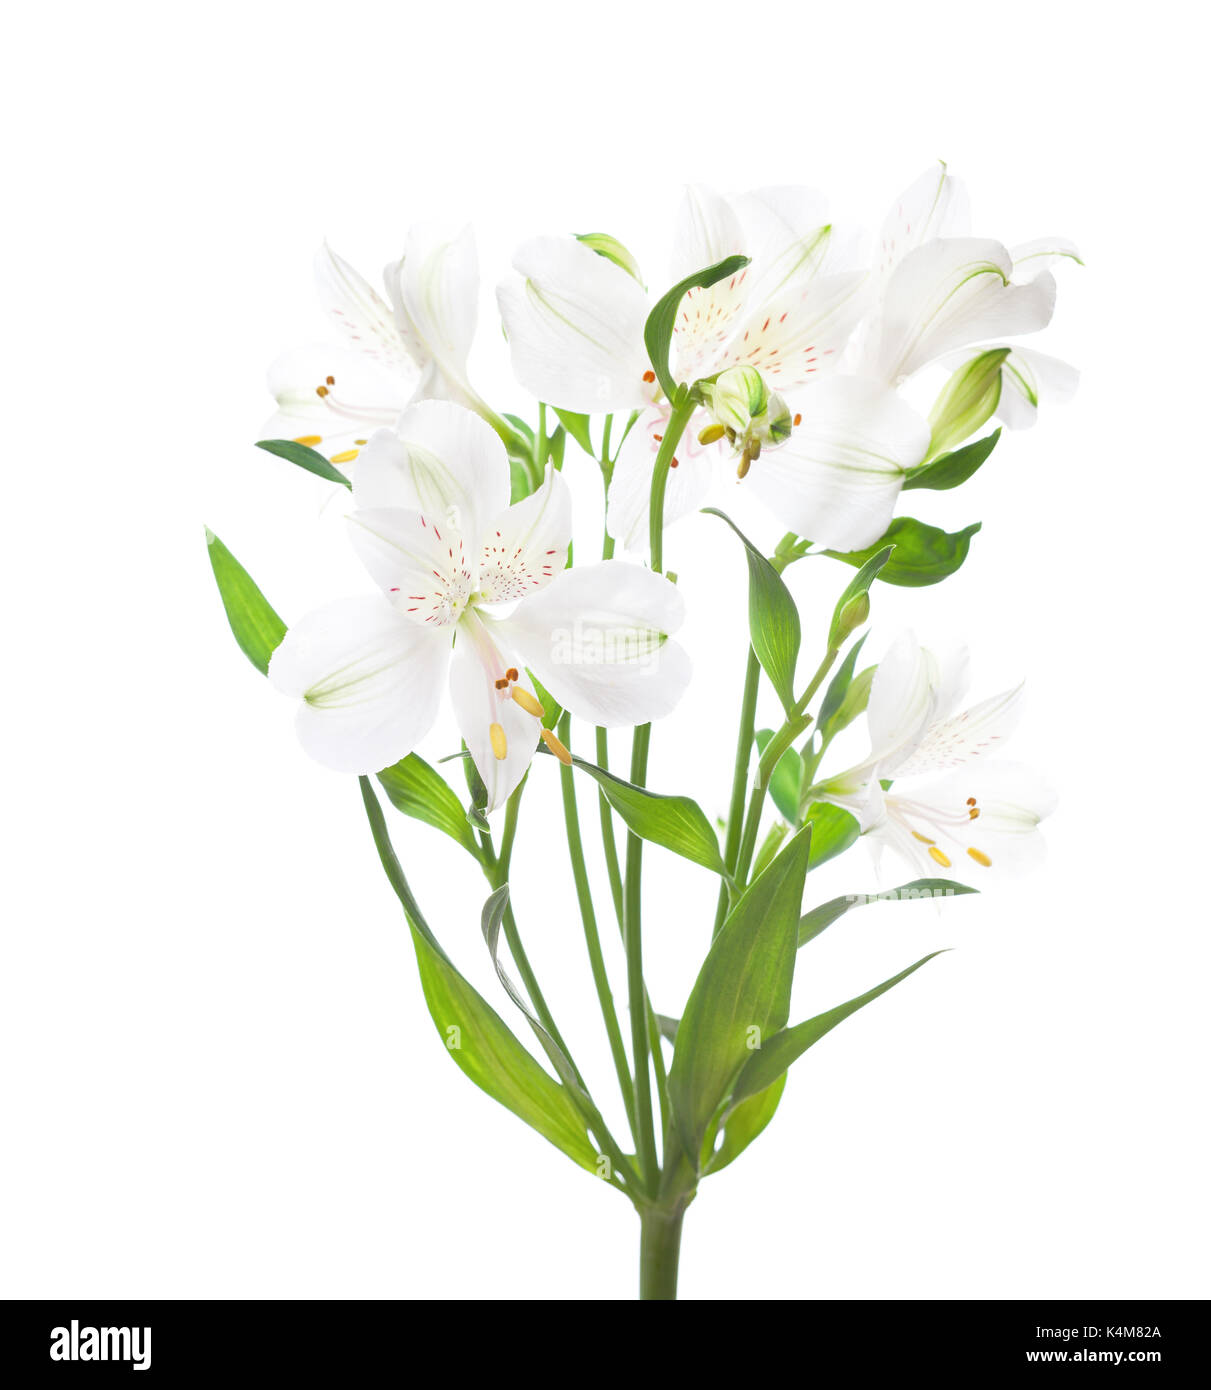 White alstroemeria flowers isolated on white background stock photo white alstroemeria flowers isolated on white background mightylinksfo Gallery